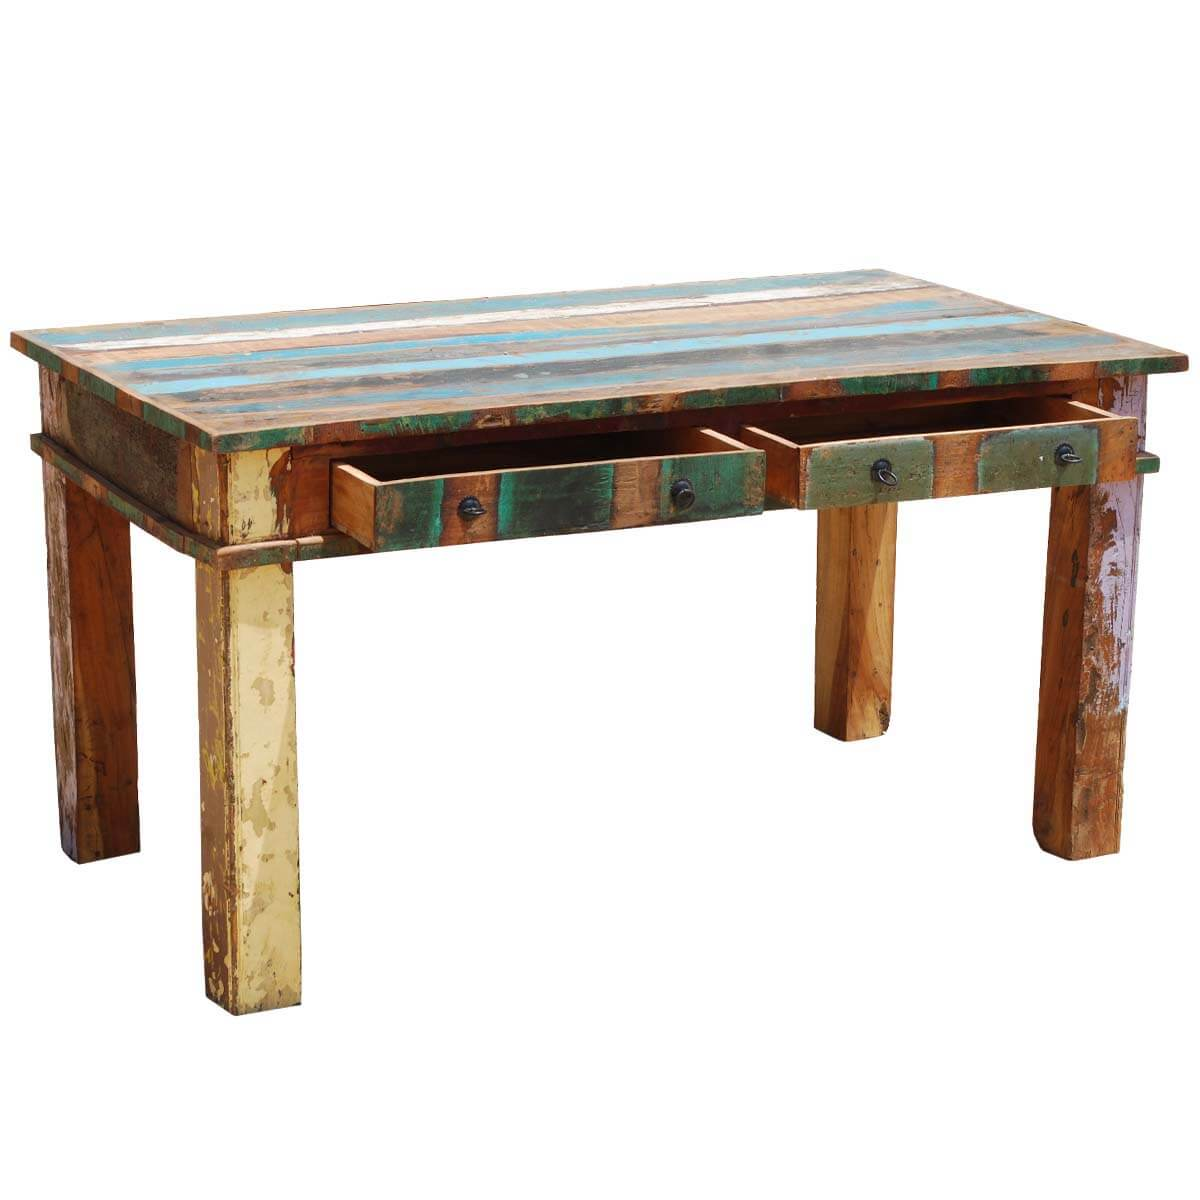 Dining Room Furniture Rustic Reclaimed Wood Rustic Dining Room Table Furniture